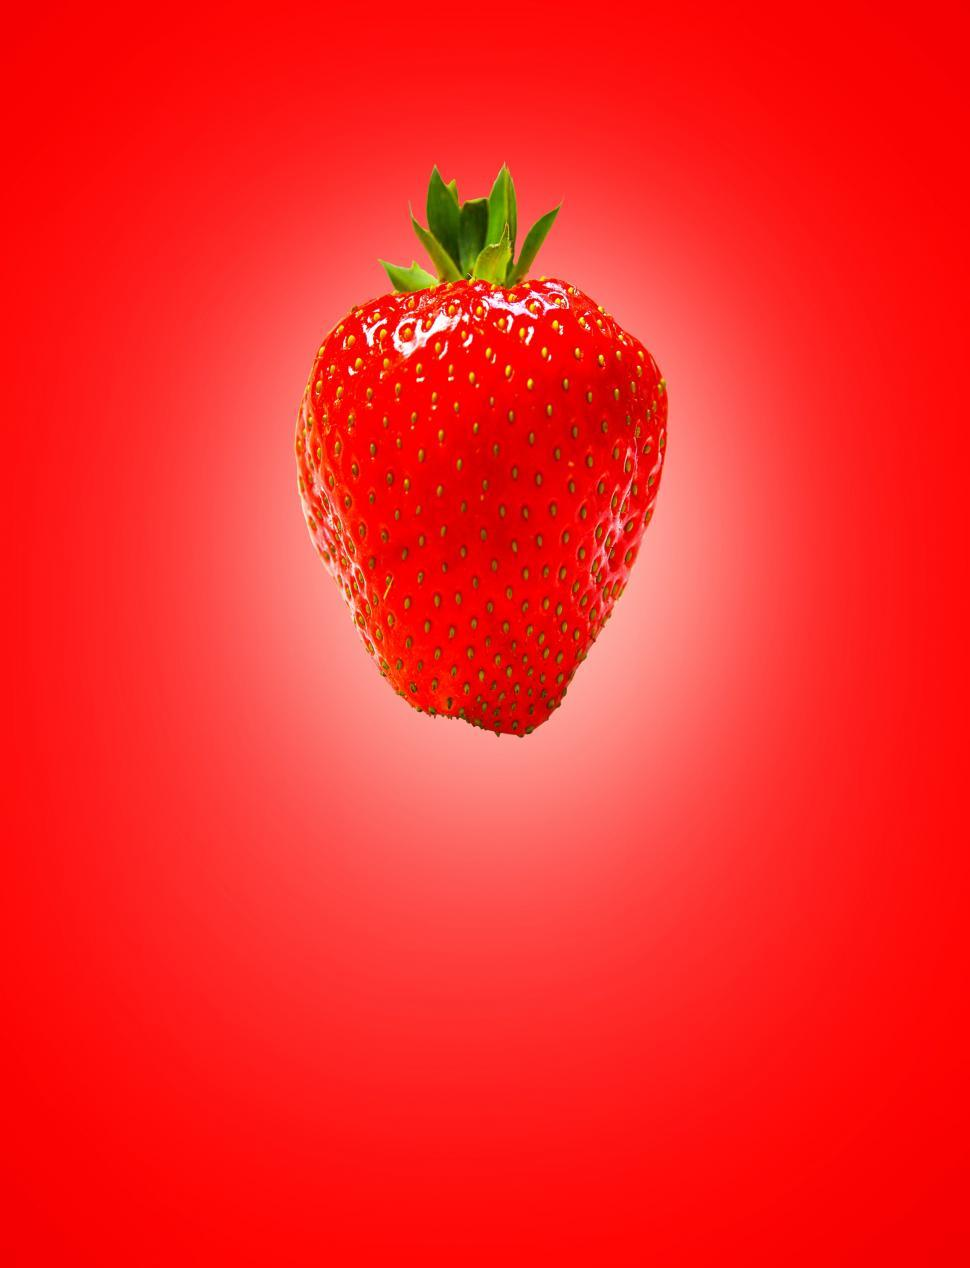 Download Free Stock Photo of Red Strawberry on Red Background